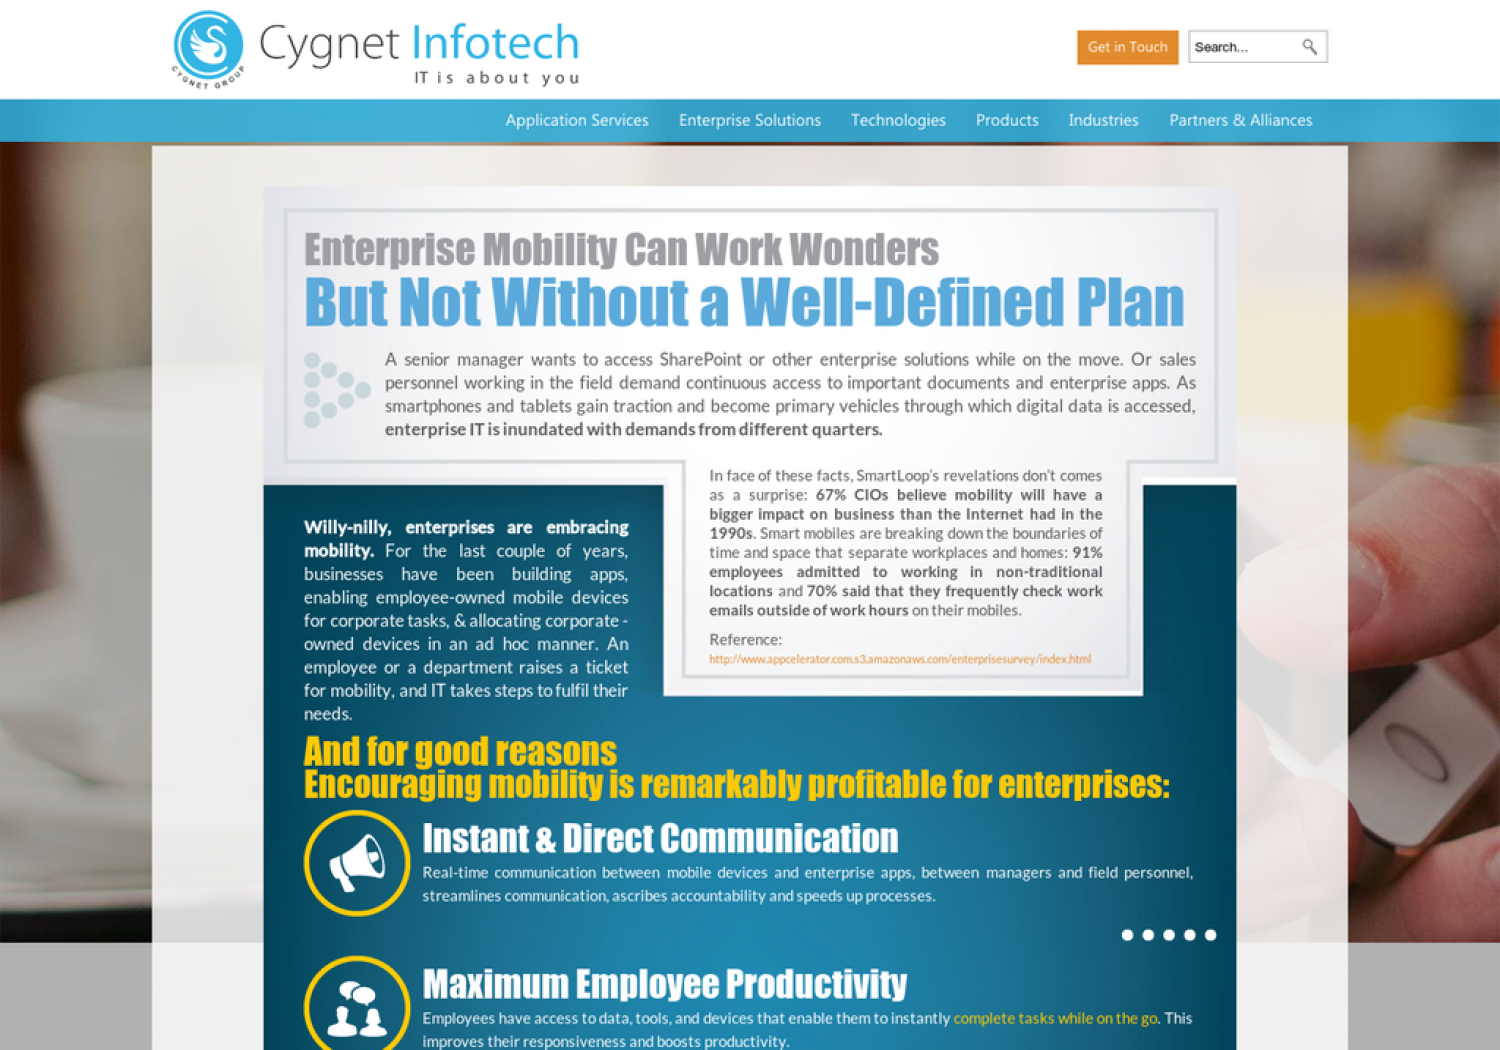 Enterprise Mobility Strategy can work wonders but not without a well-defined plan Infographic